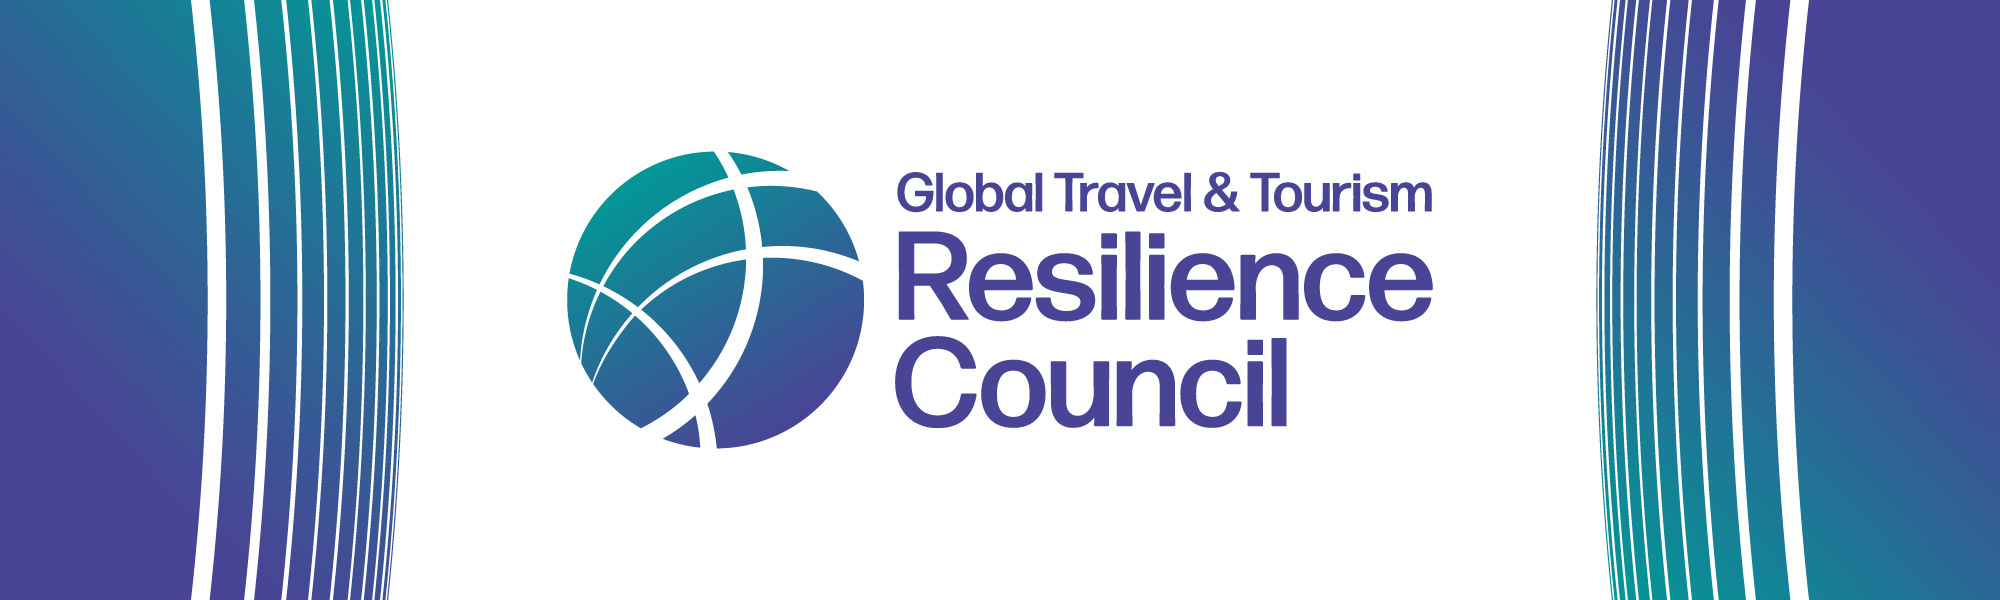 Resilience Council landing page header